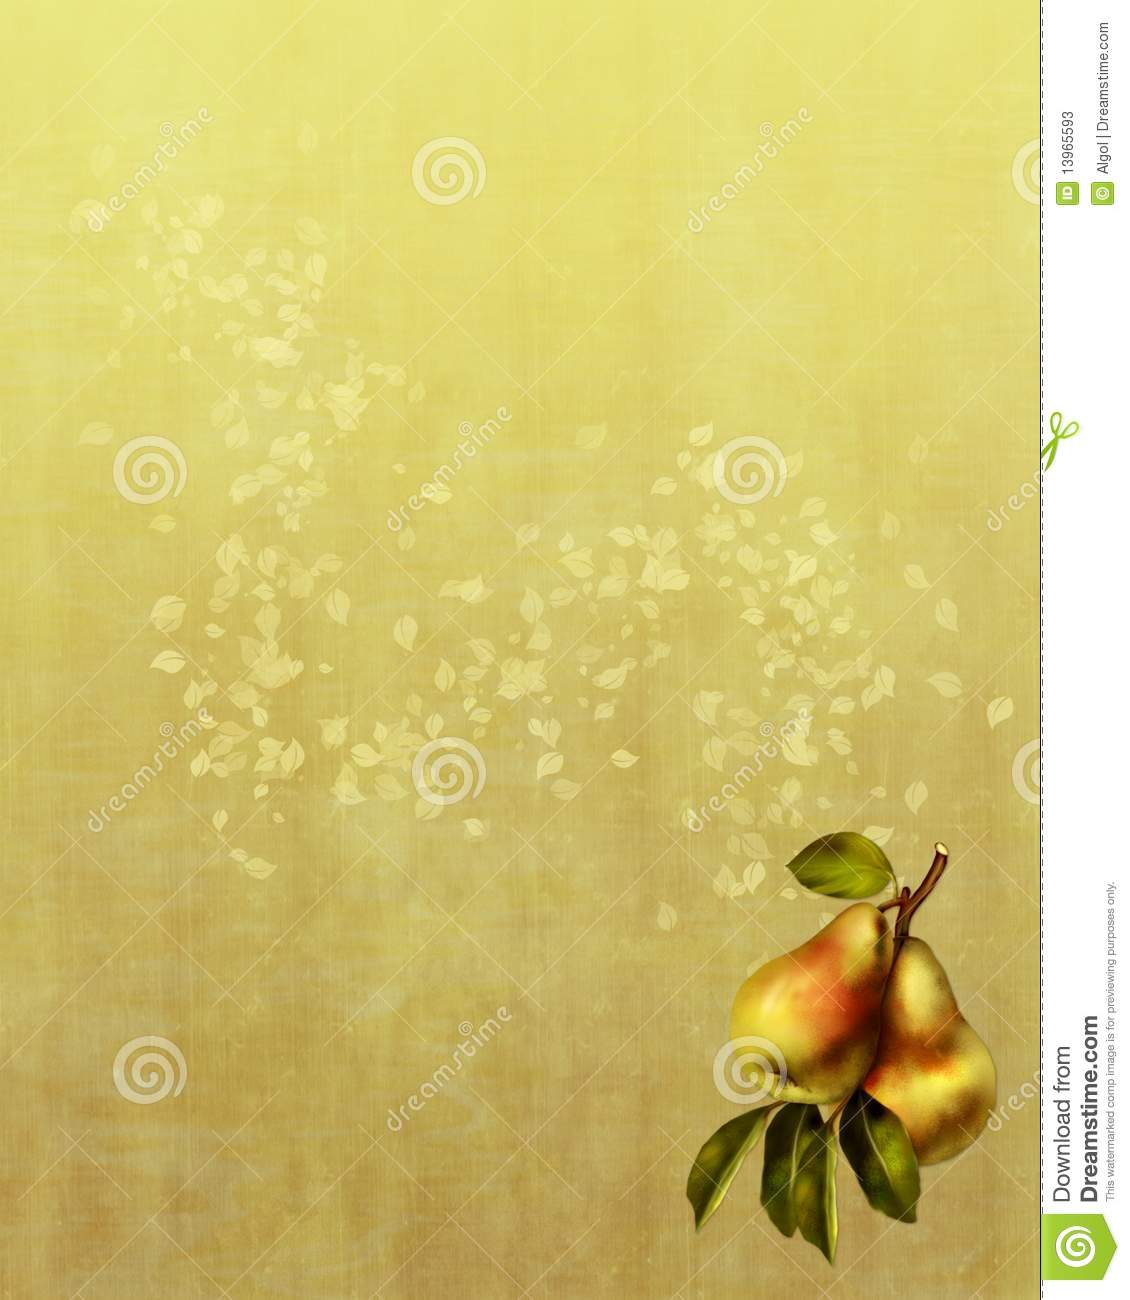 Free Fall Wallpaper Backgrounds Autumn Fall Or Harvest Textured Background Paper Stock